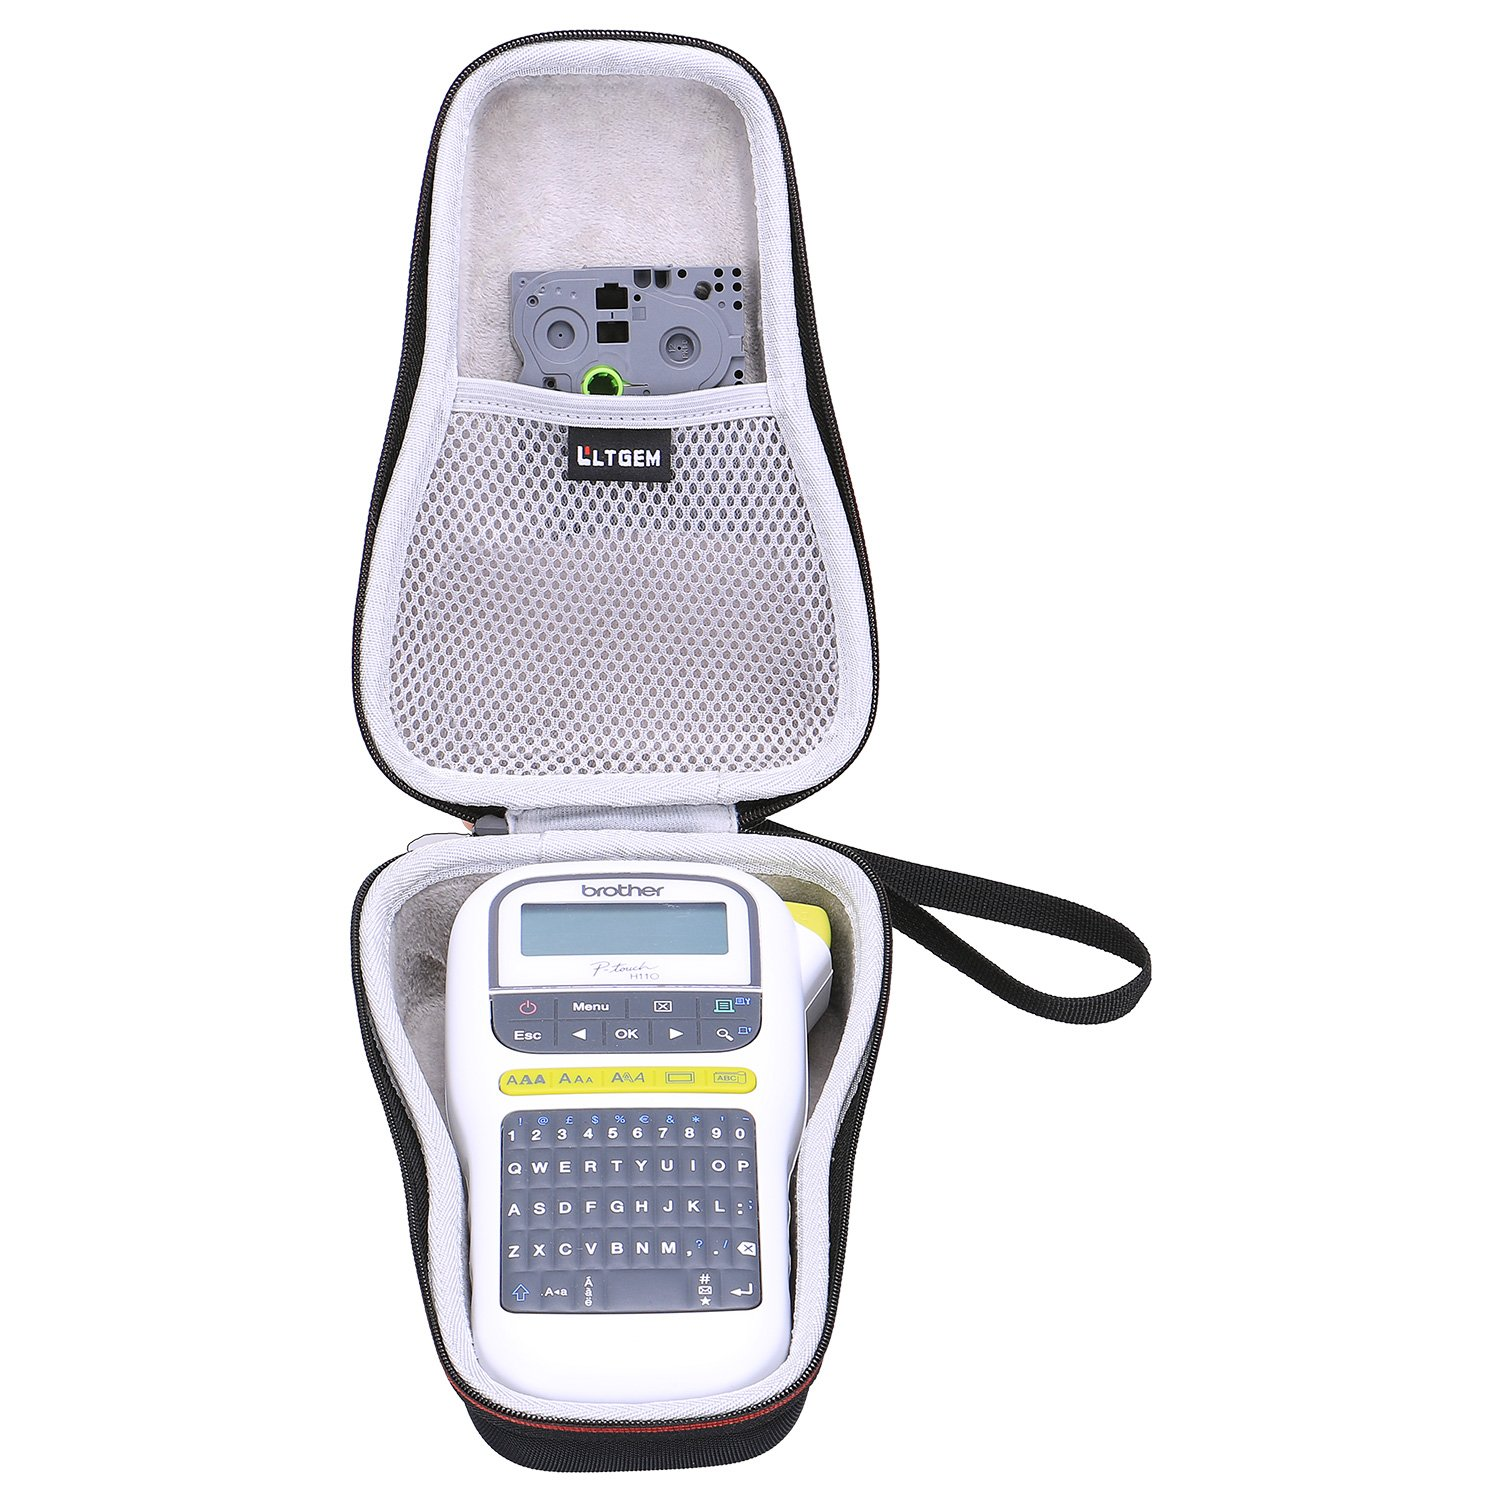 LTGEM EVA Hard Case for Brother P-touch PTH110 Easy Portable Label Maker - Travel Protective Carrying Storage Bag